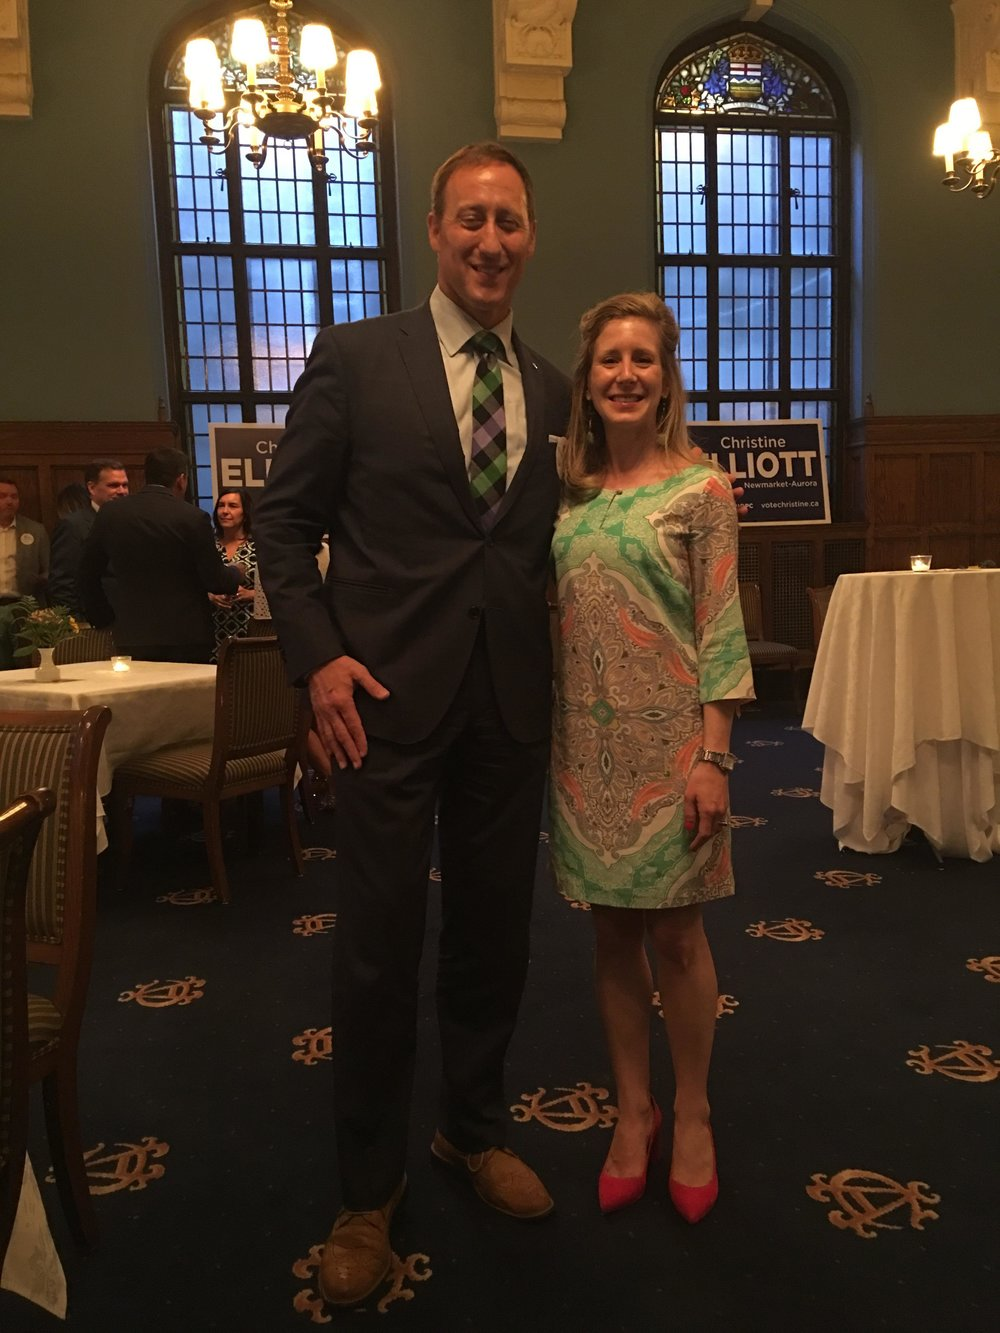 Peter MacKay - Former Minister of Justice & Attorney General, Foreign Affairs, and National Defence&Beaches-East York resident